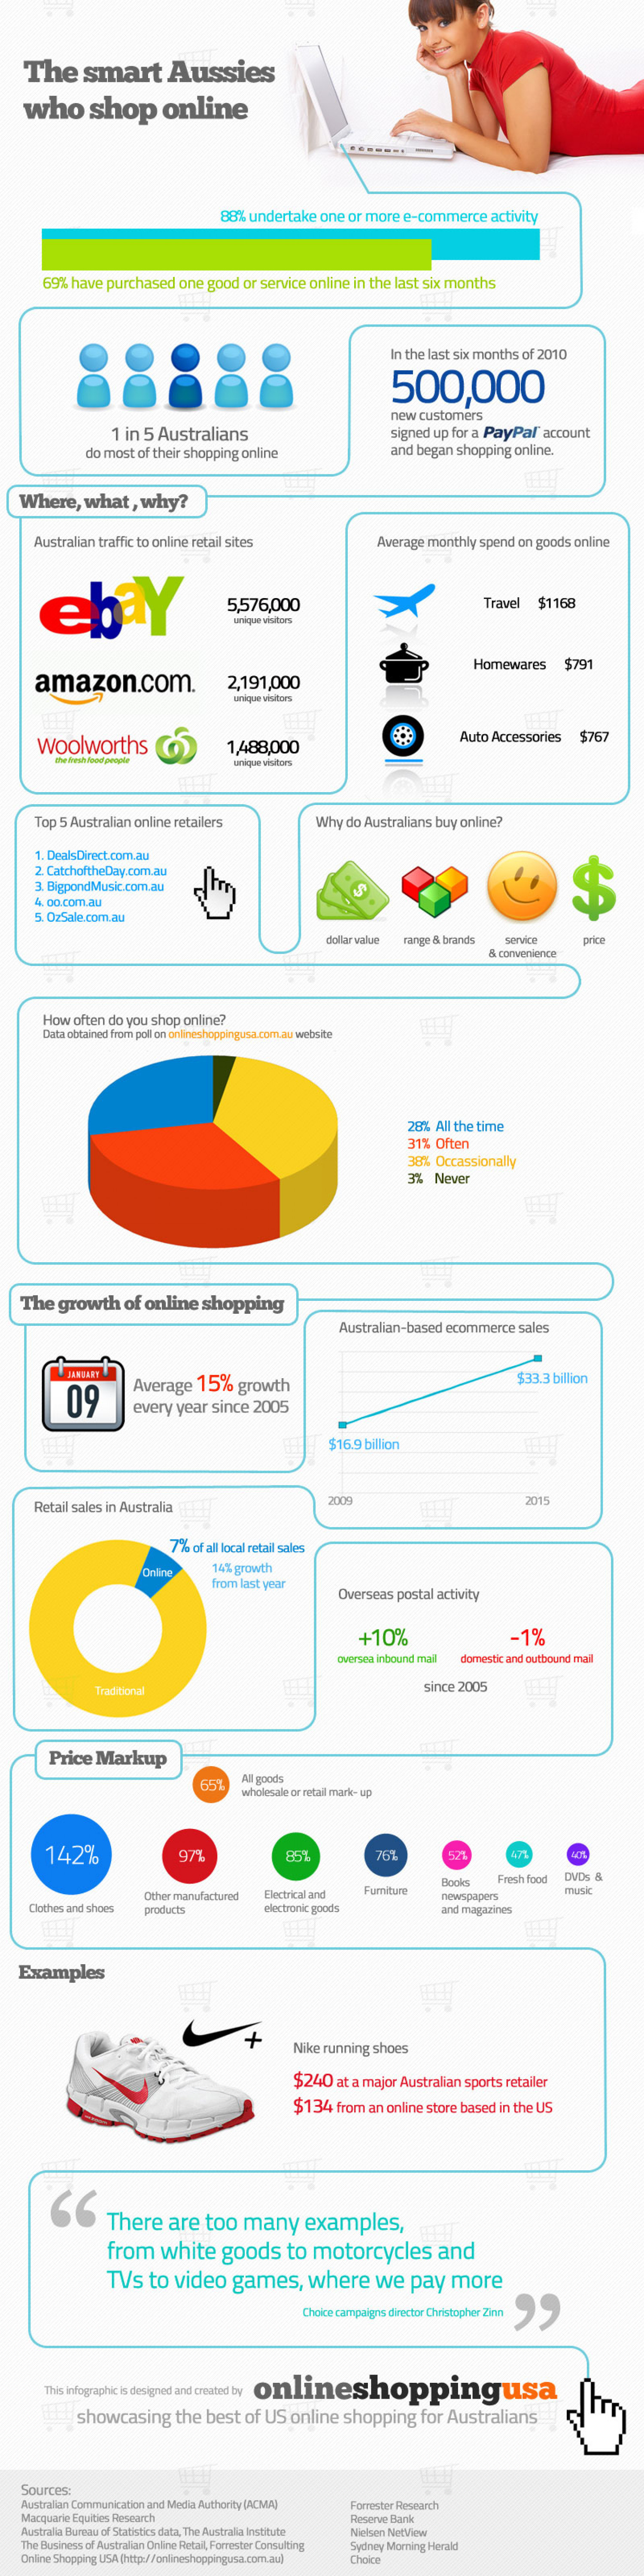 The smart Aussies who shop online Infographic